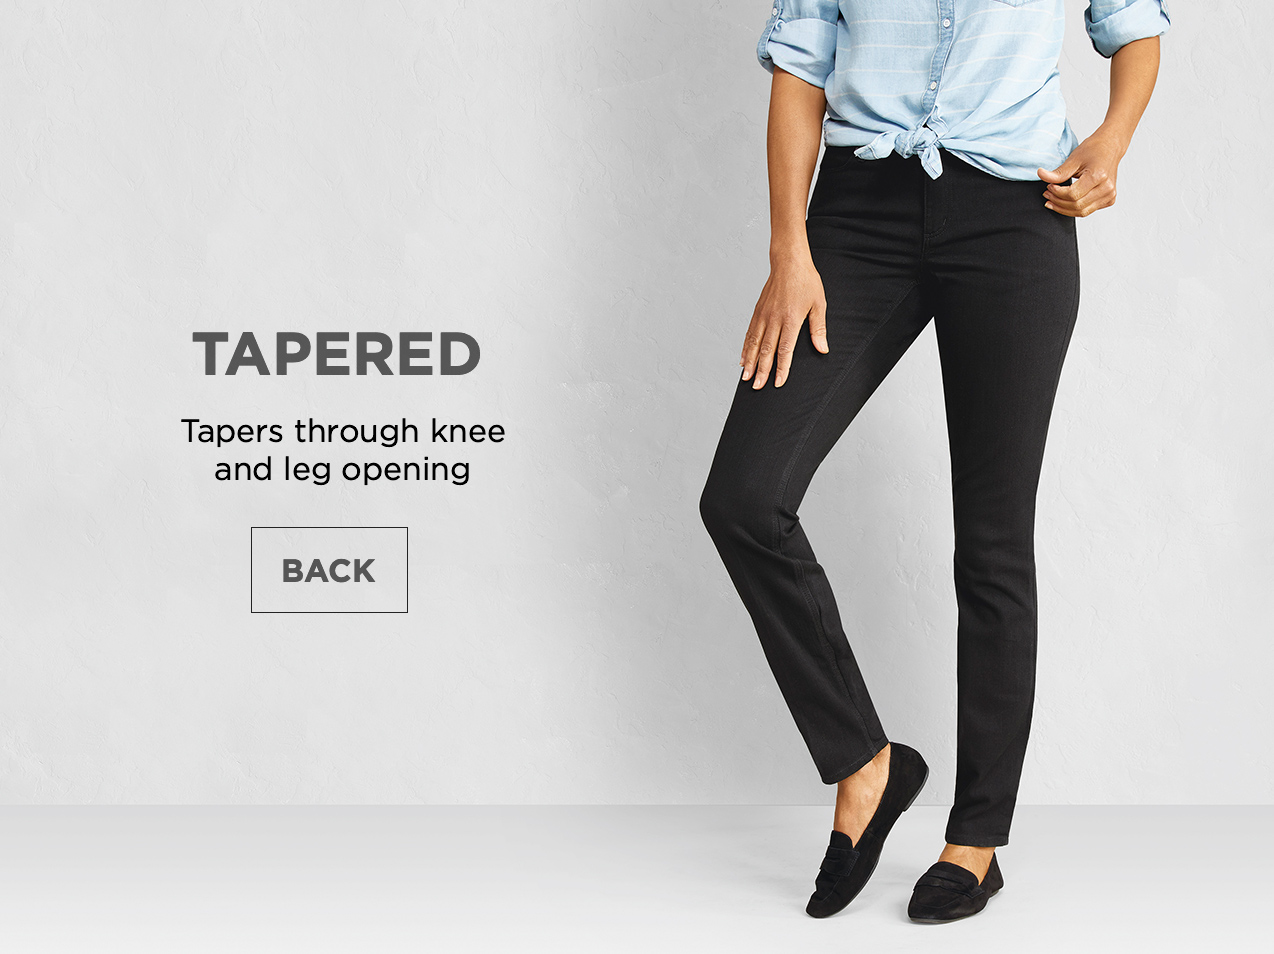 Tapered: Tapers through knee and leg opening.